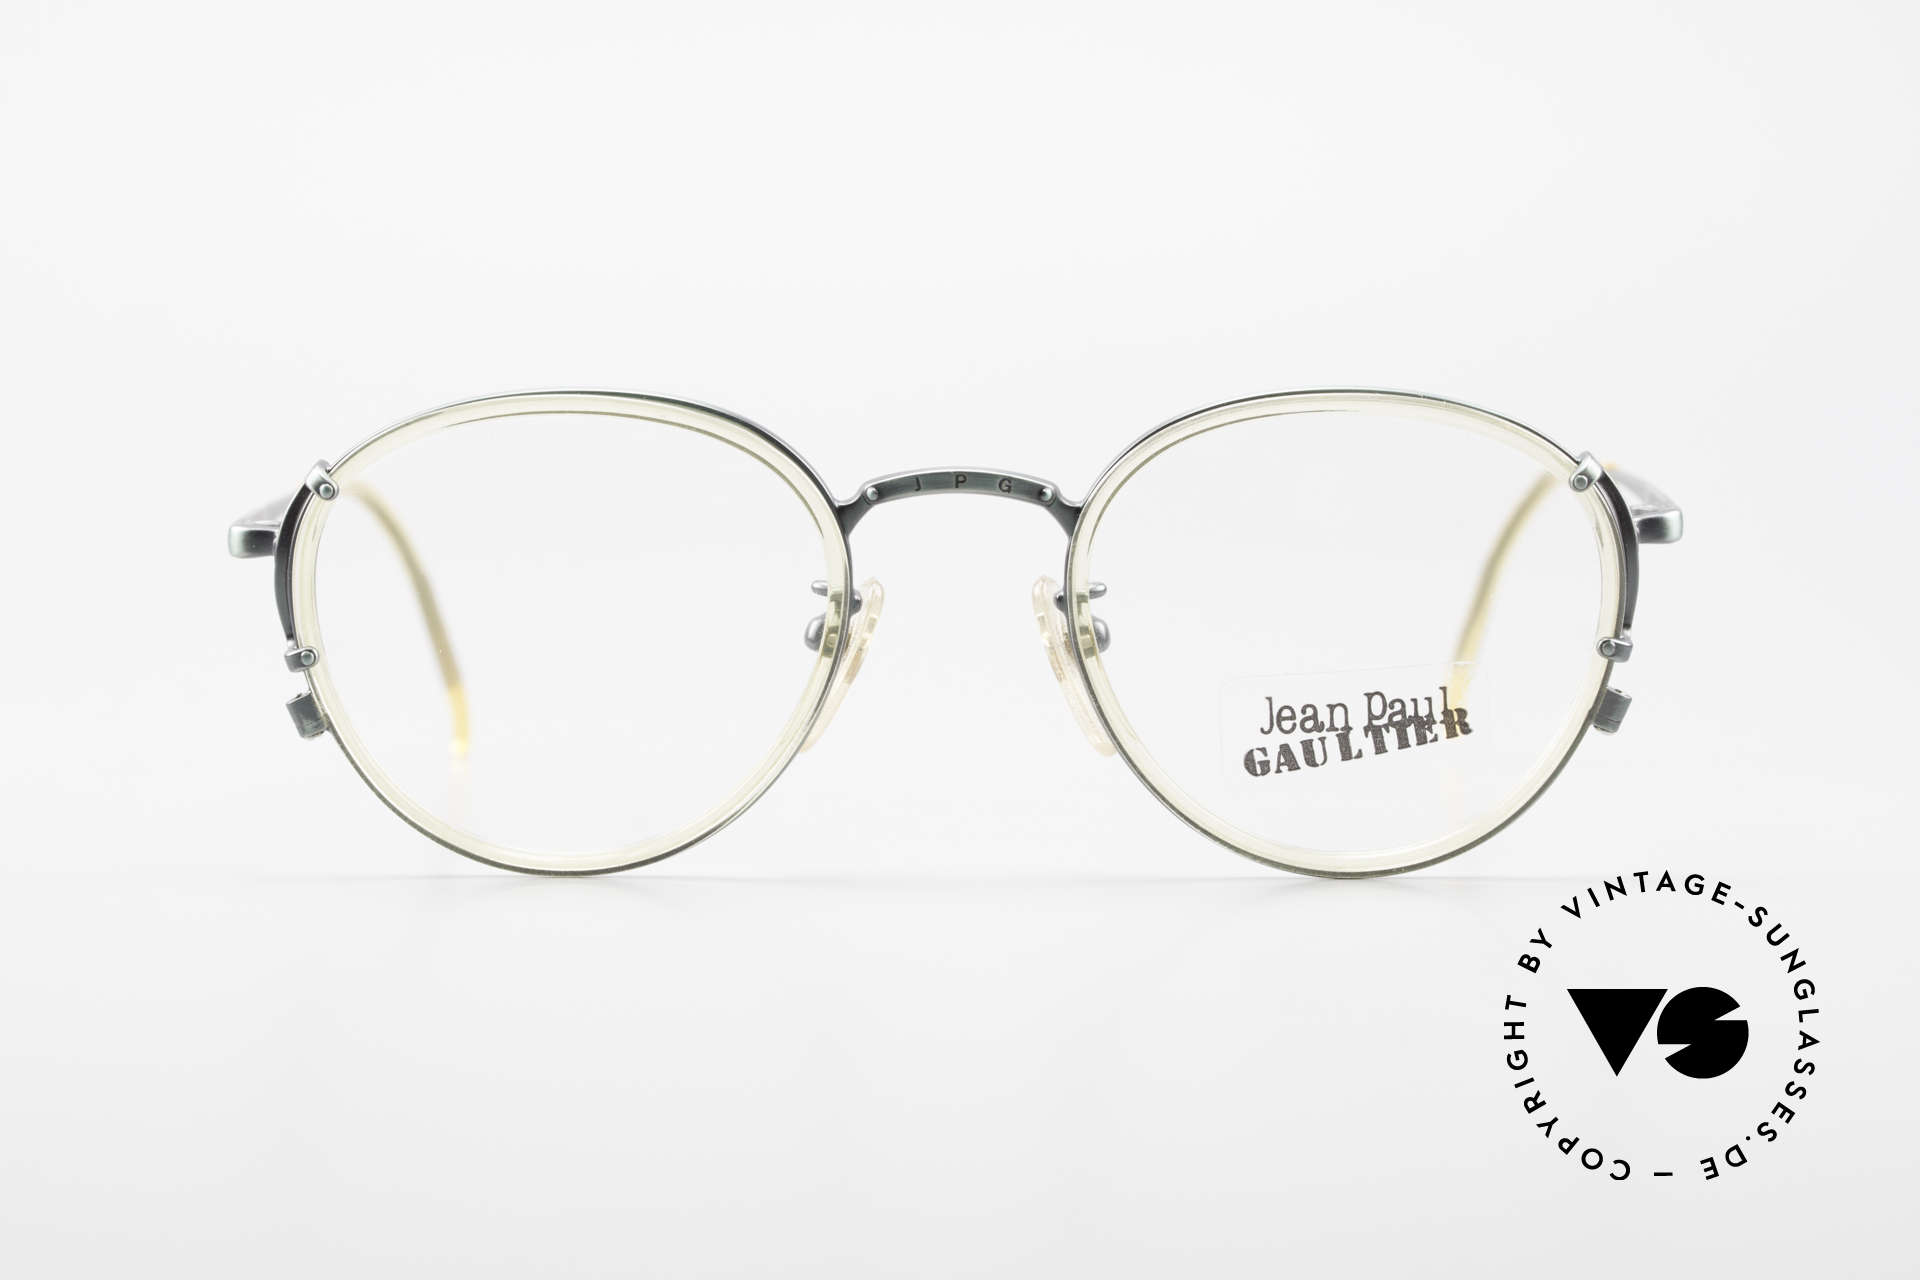 Jean Paul Gaultier 55-3271 Panto 90's Designer Glasses, really rare designer-piece from the early 90's; vertu!, Made for Men and Women